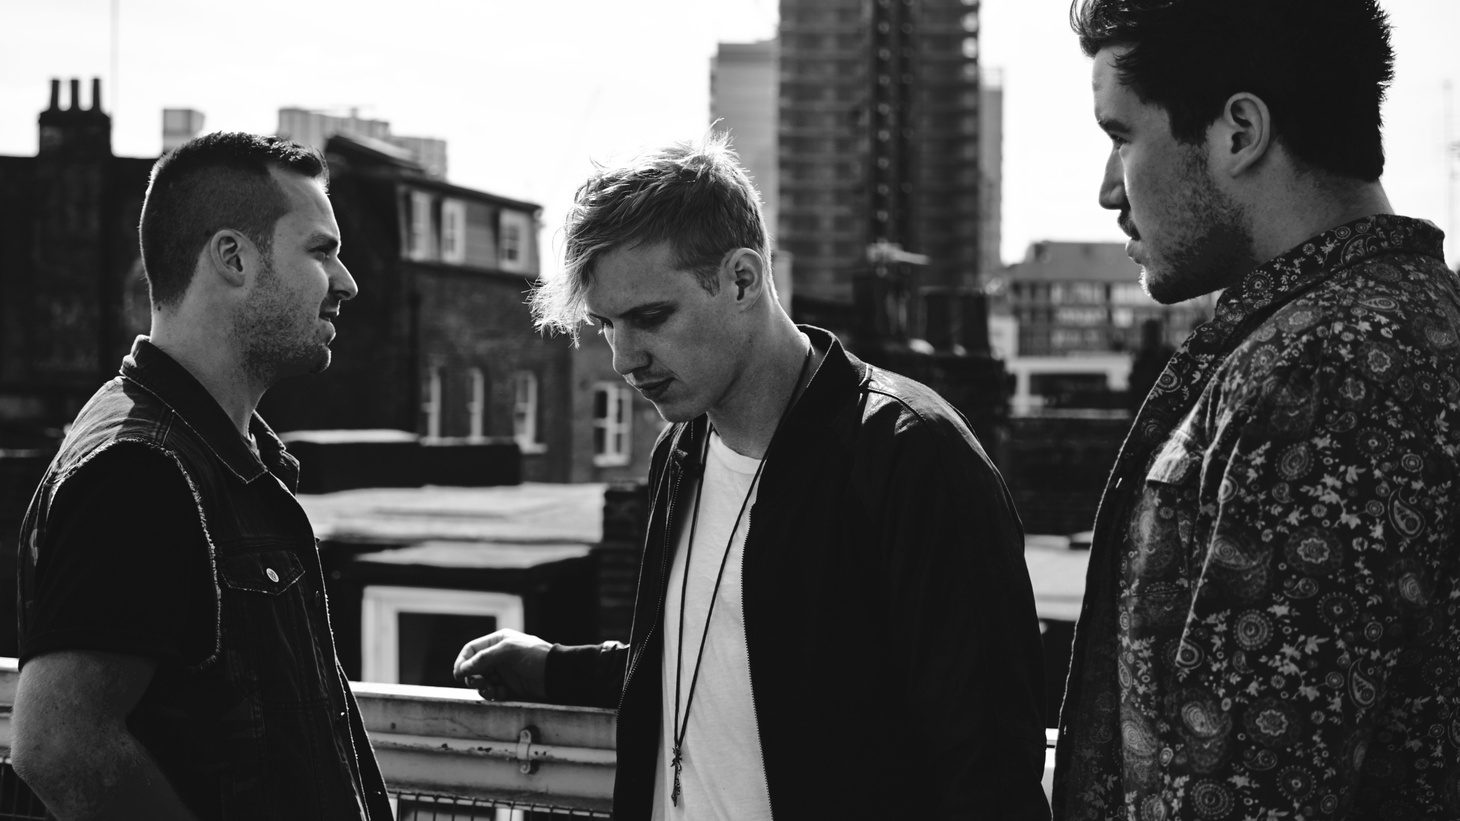 Using layered synths, drums and warm vocals, Jon, James and Tyrone have built a soundscape and aesthetic that is instantly familiar, yet distinctly their own. Written between Sydney and Berlin and completed in hotels in Montreal and New York, Bloom is written, recorded and produced by RÜFÜS DU SOL.